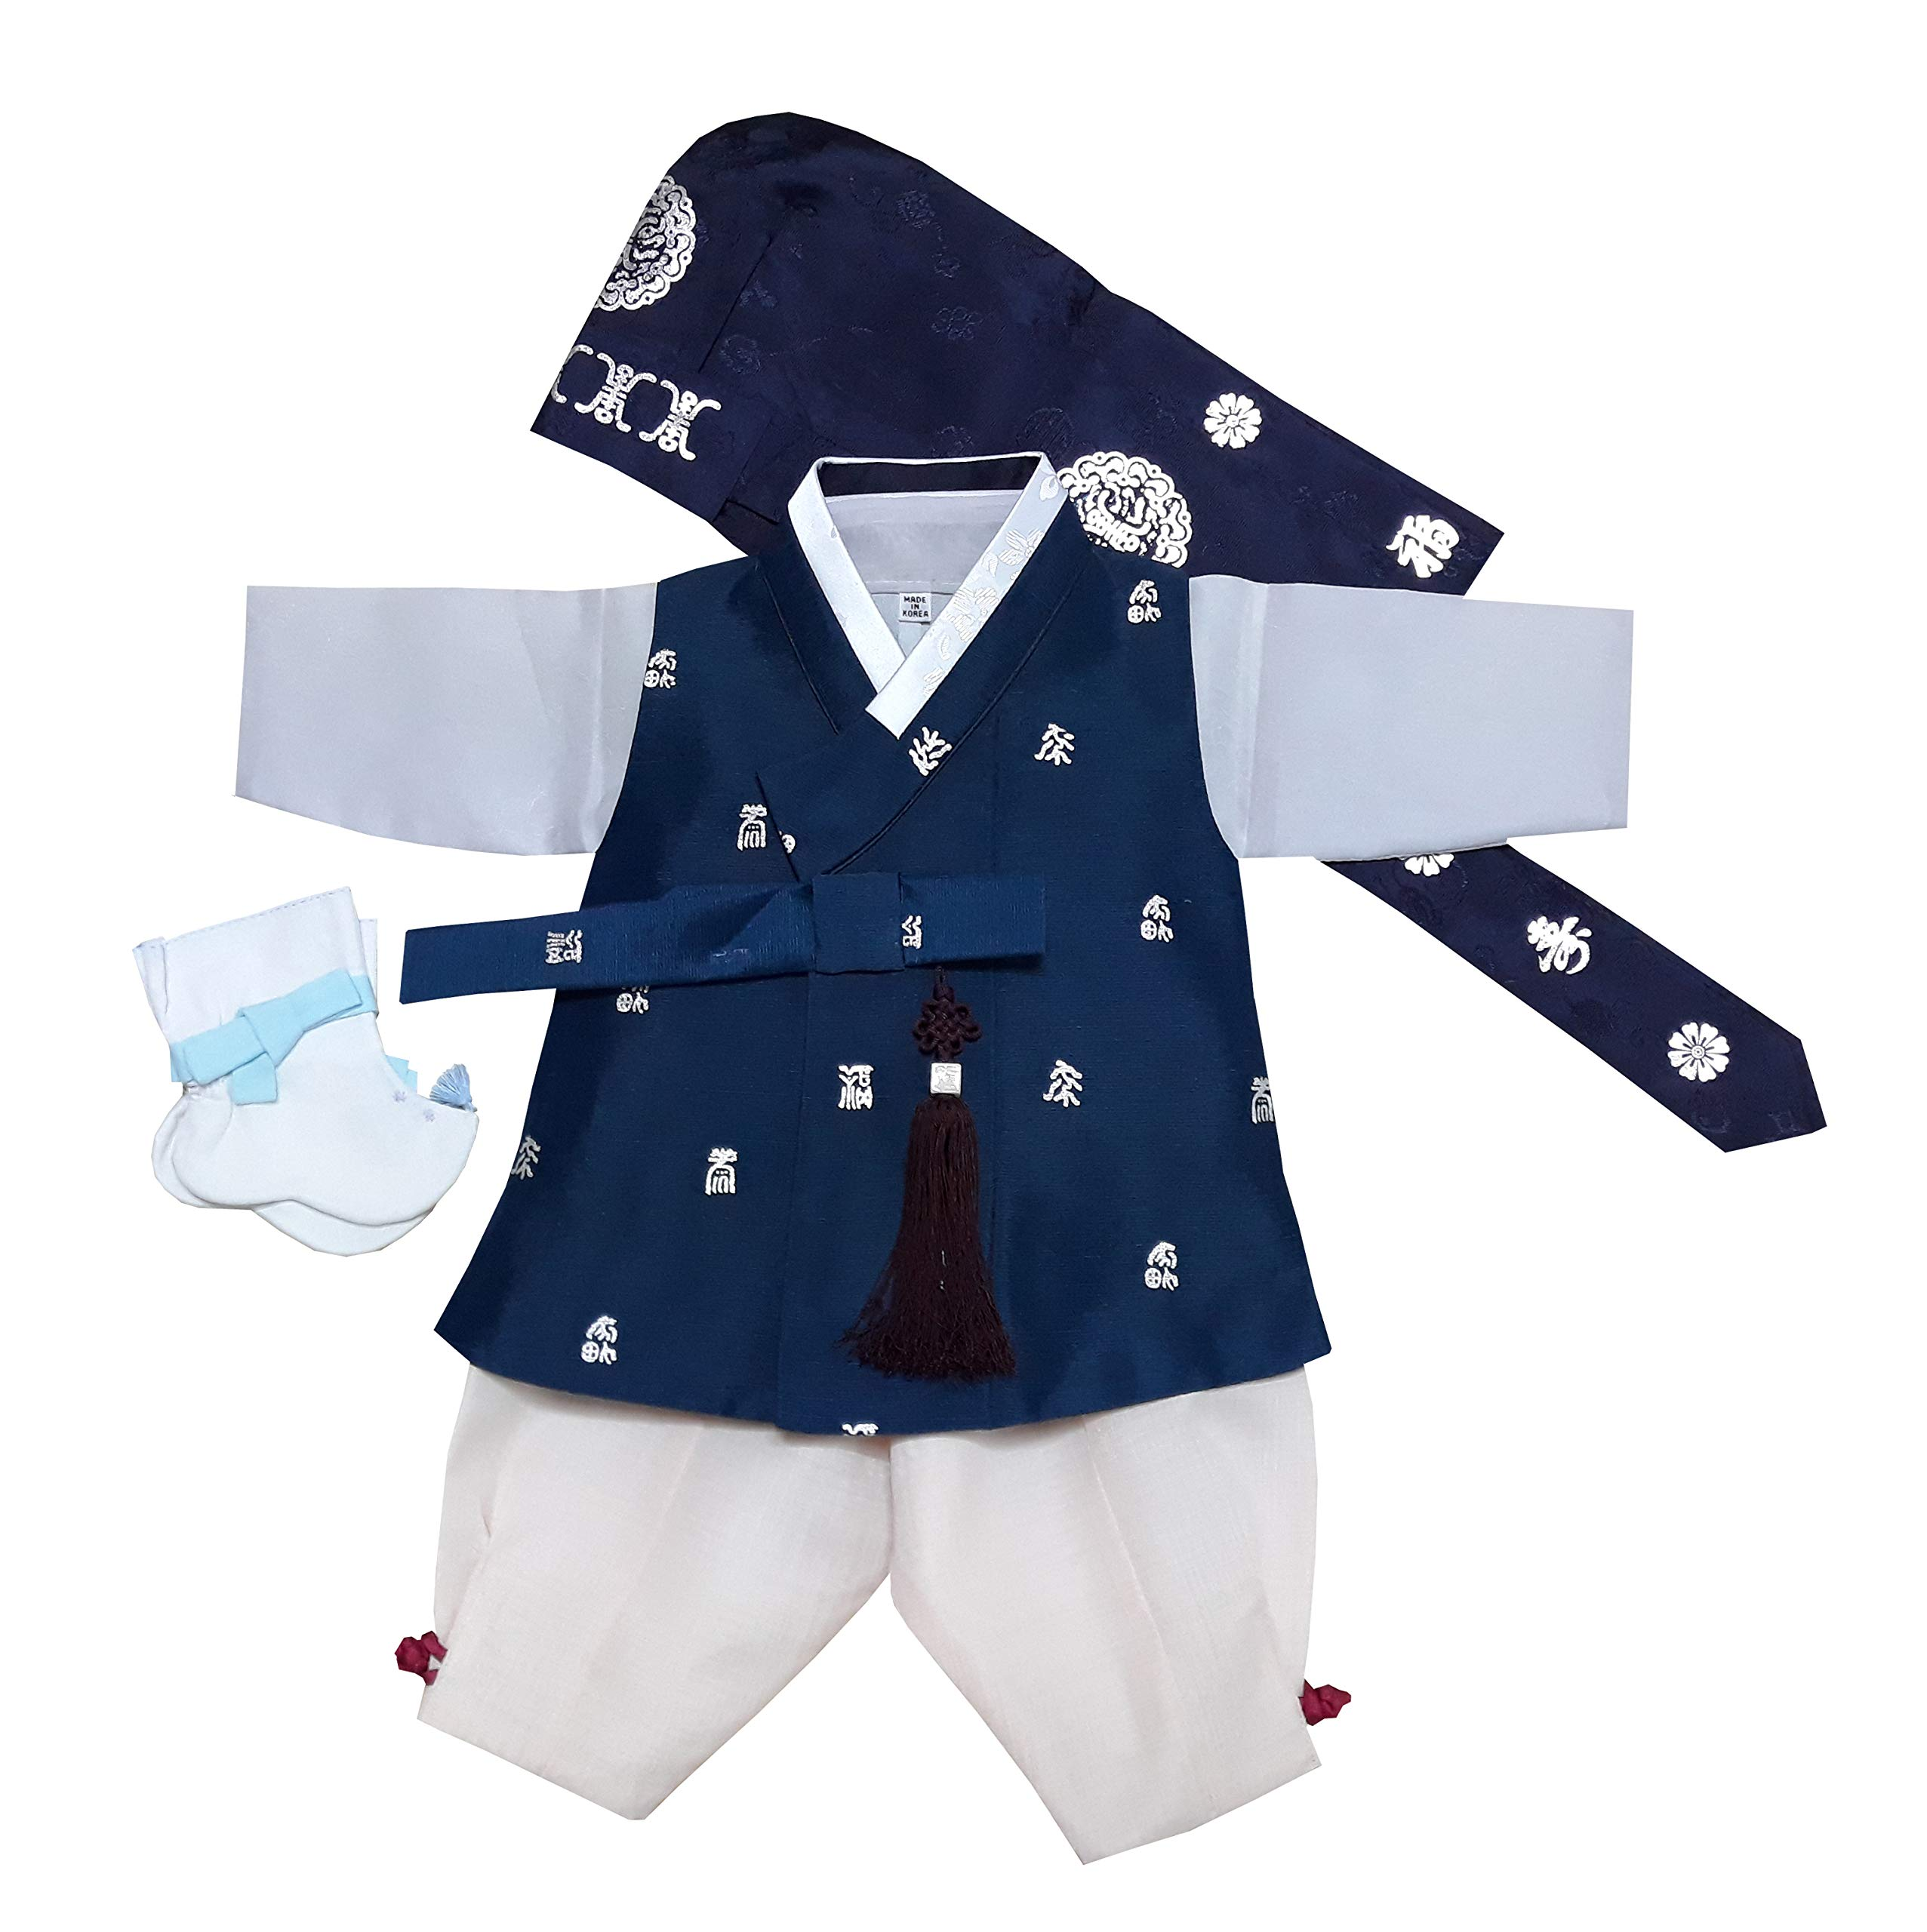 100 Day Birth Korea Baby Boy Hanbok Traditional Dress Outfits Celebration Party Navy with Silver Print Set by hanbok store